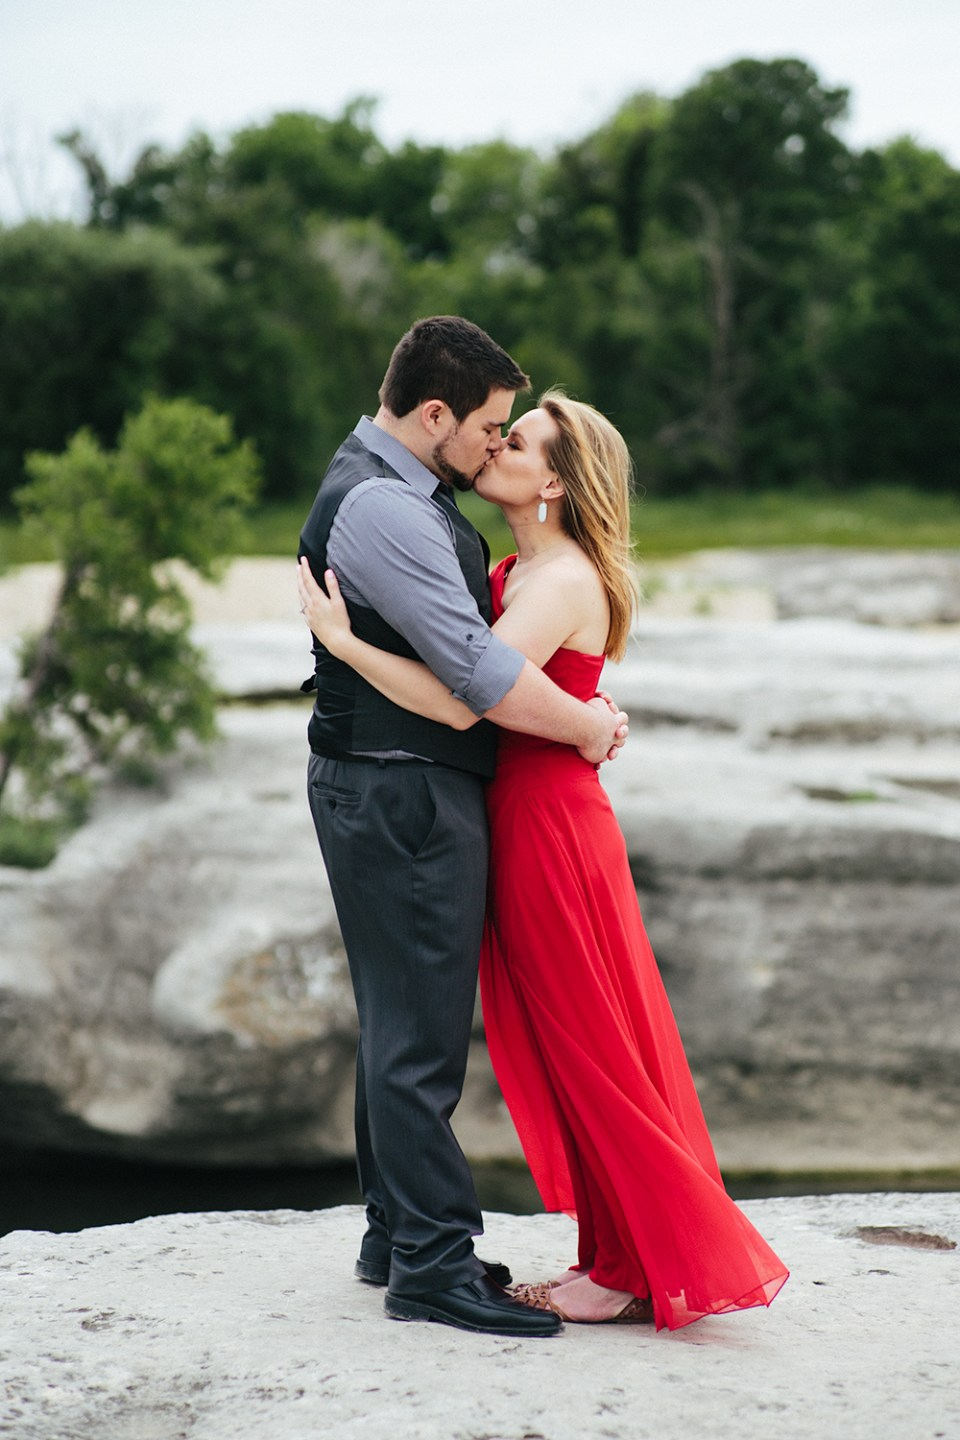 mckinney-falls-engagement-photography-austin-texas-16